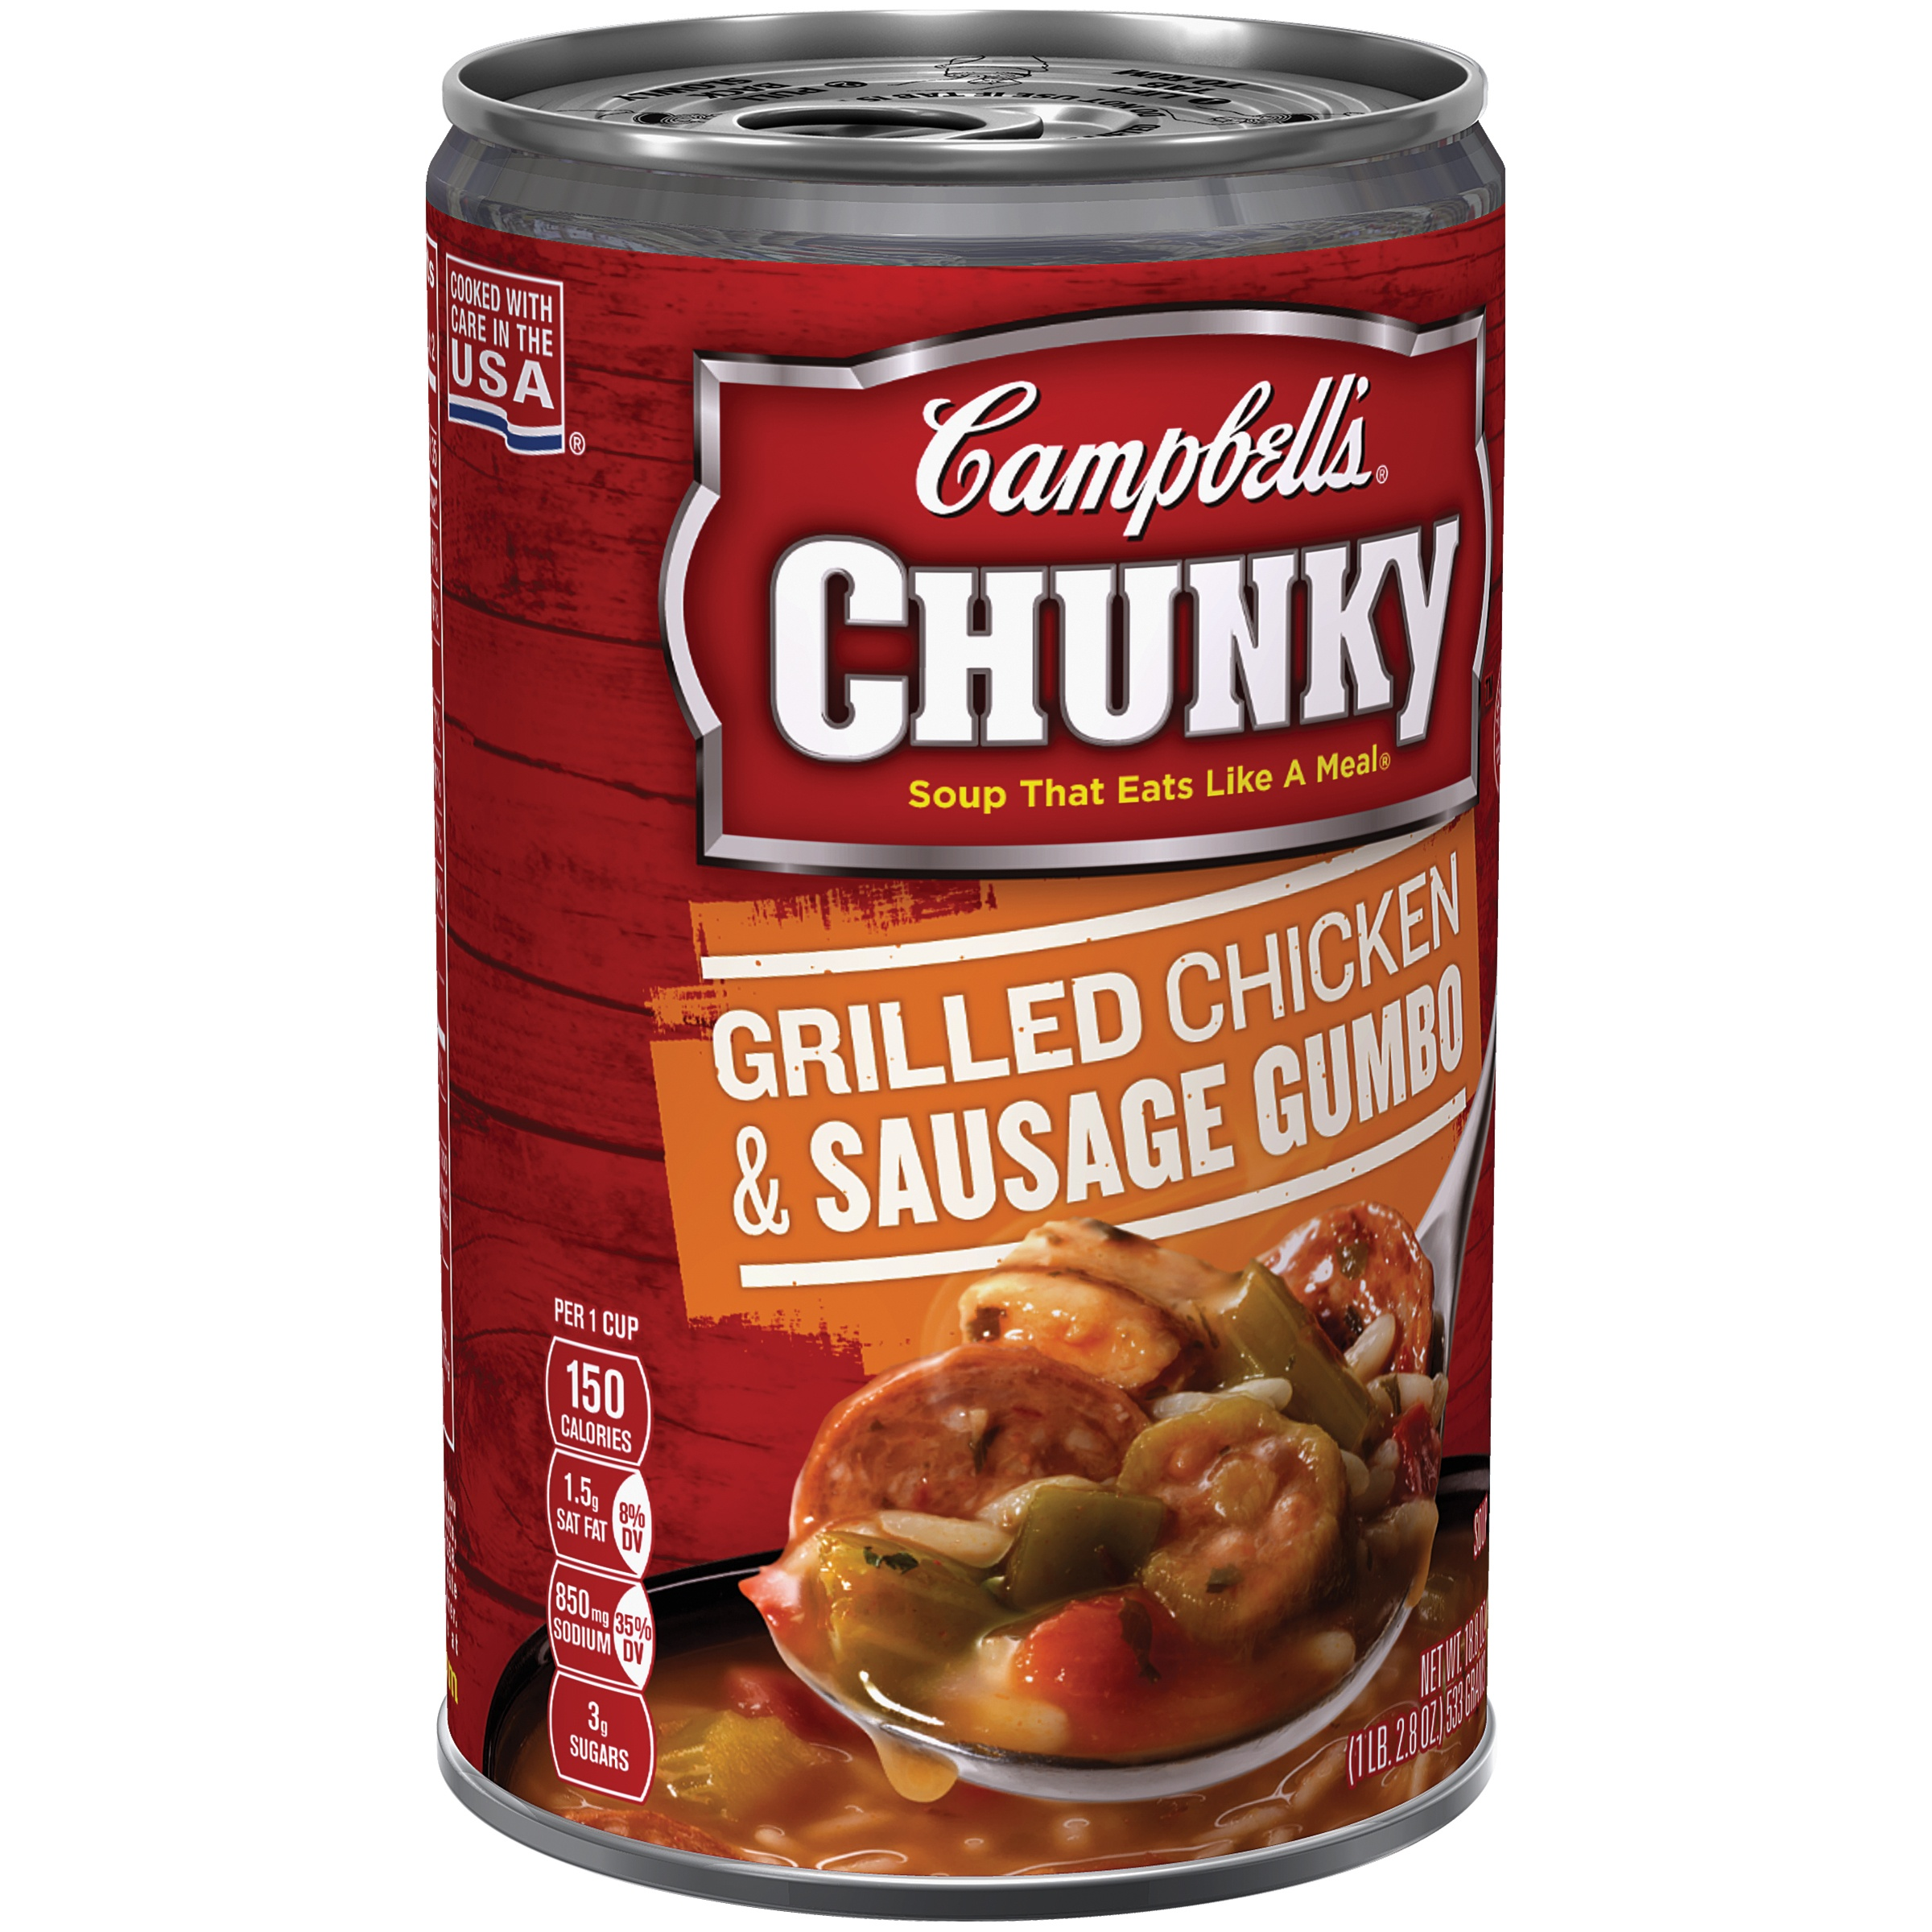 Campbell's Chunky Grilled Chicken & Sausage Gumbo Soup 18.8oz by Campbell Soup Company